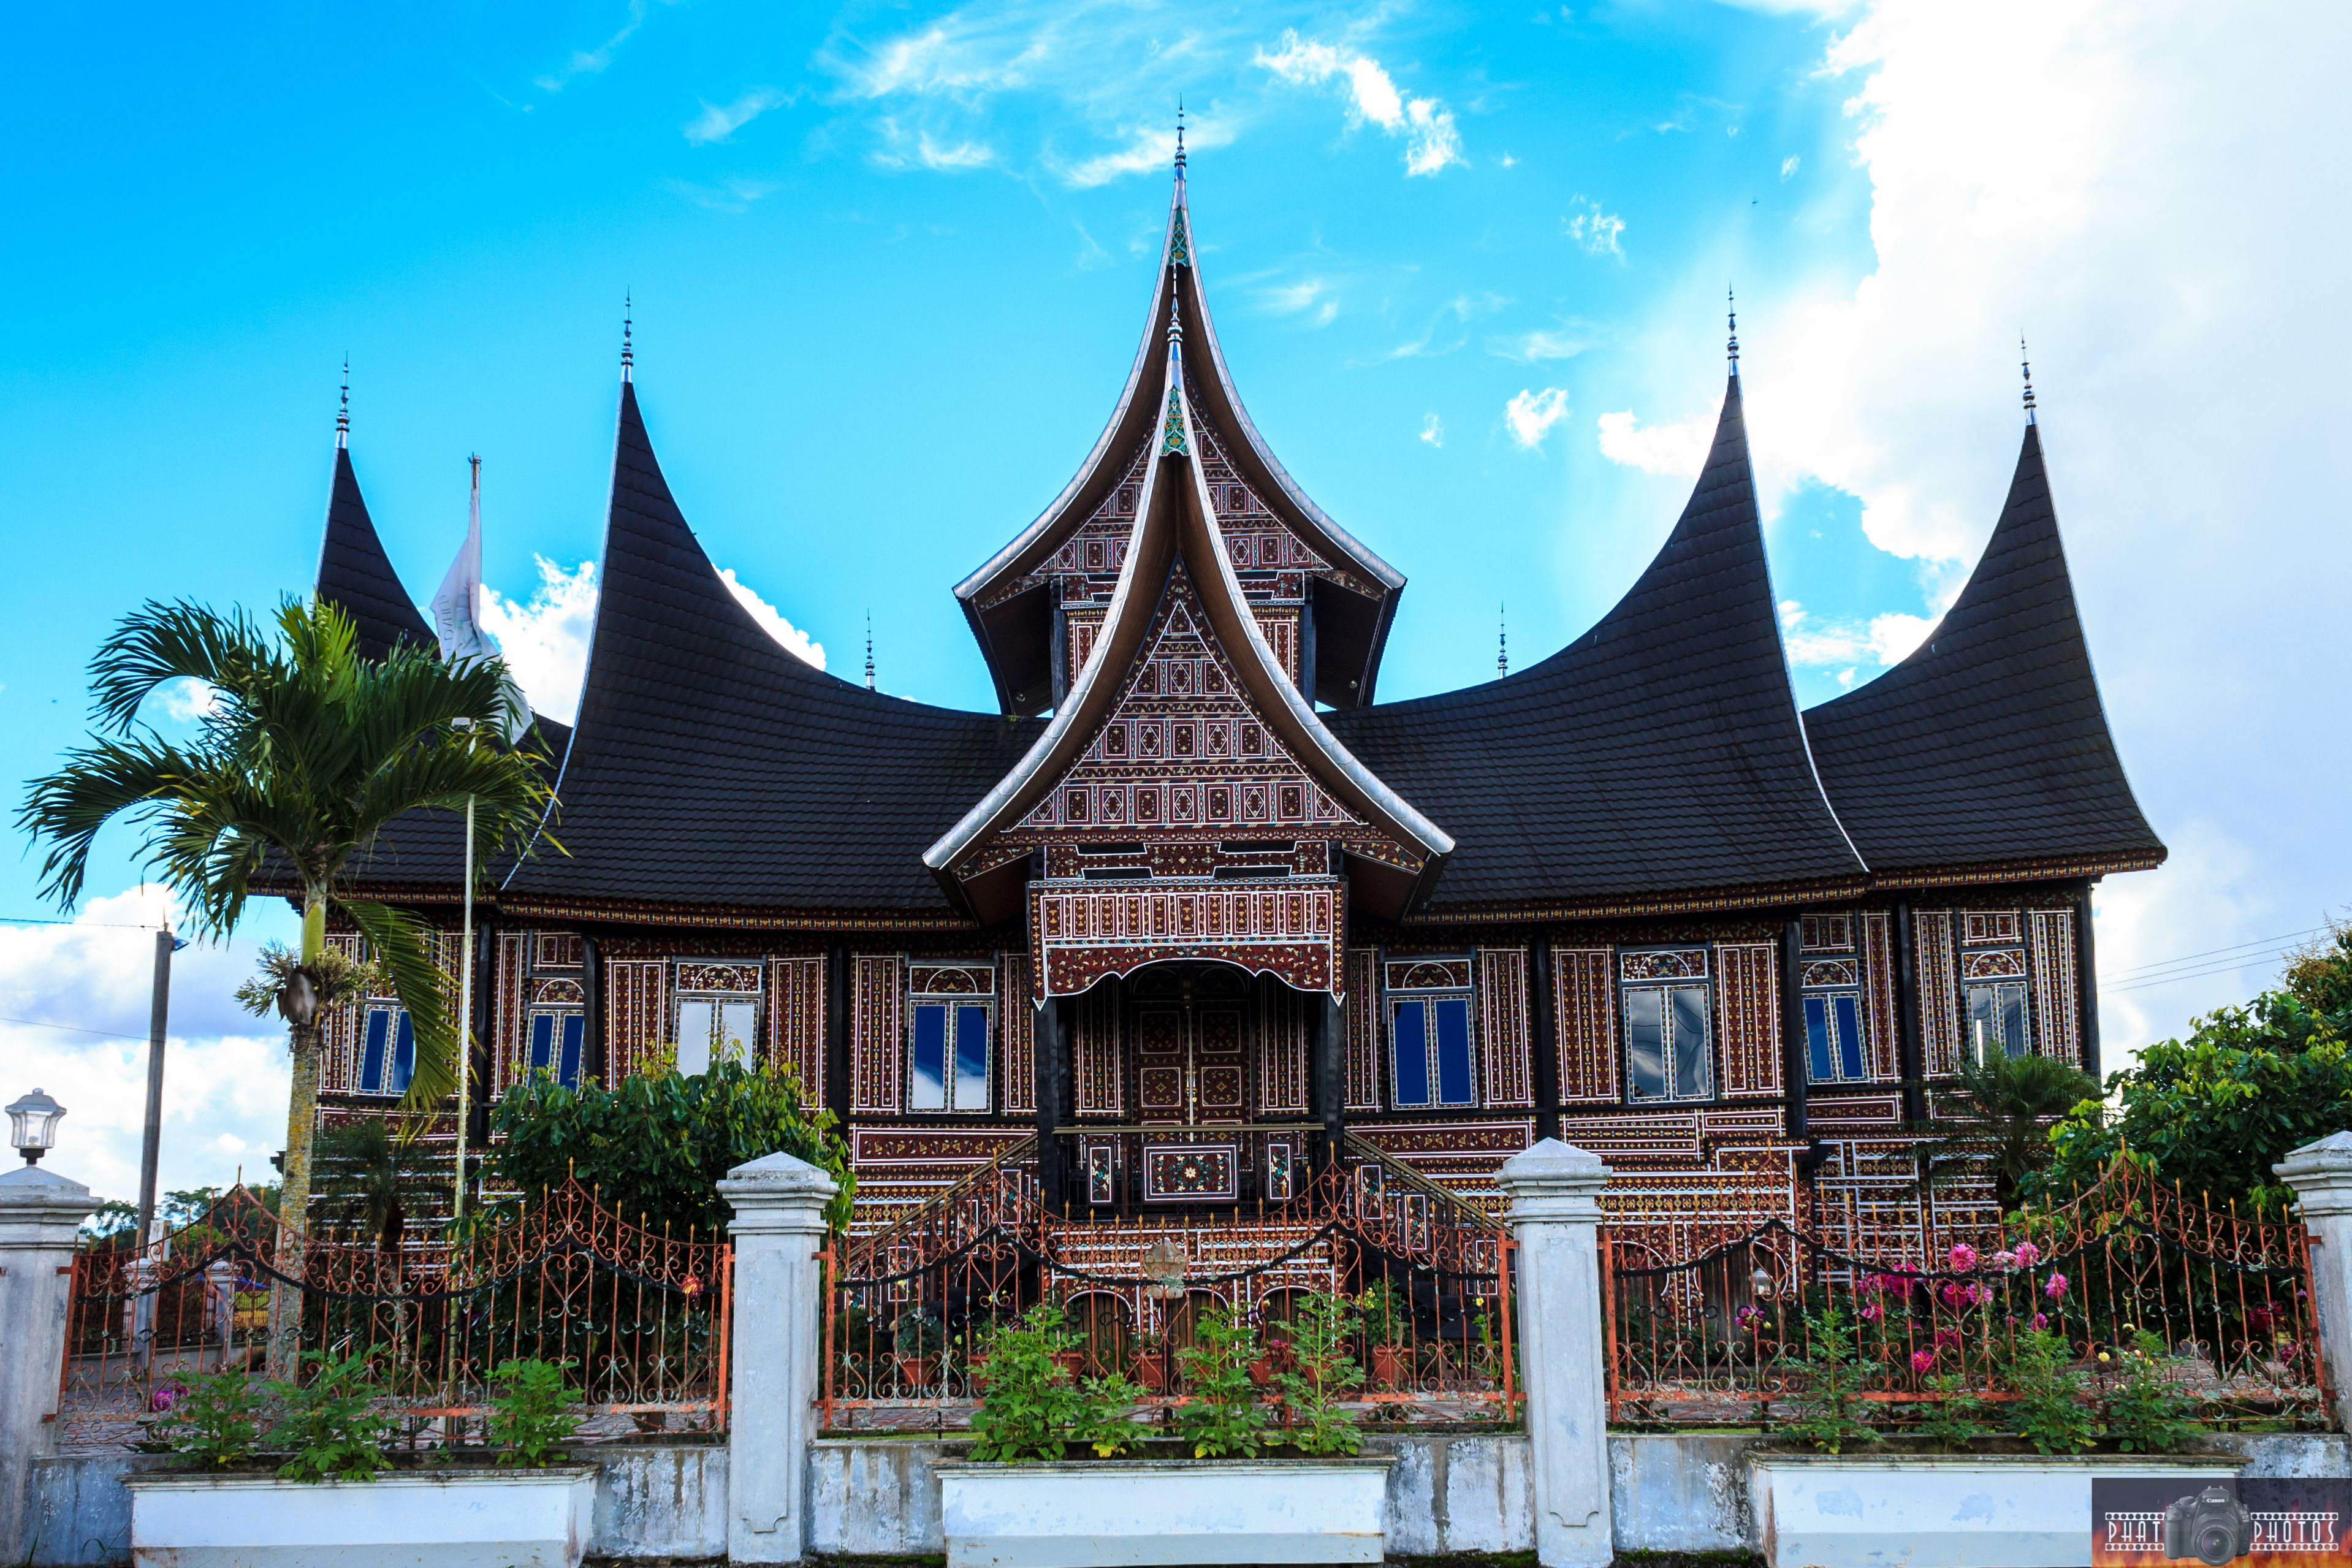 Minangkabau House  Bukittinggi  Pinterest  Minangkabau, Bukittinggi and Indonesia